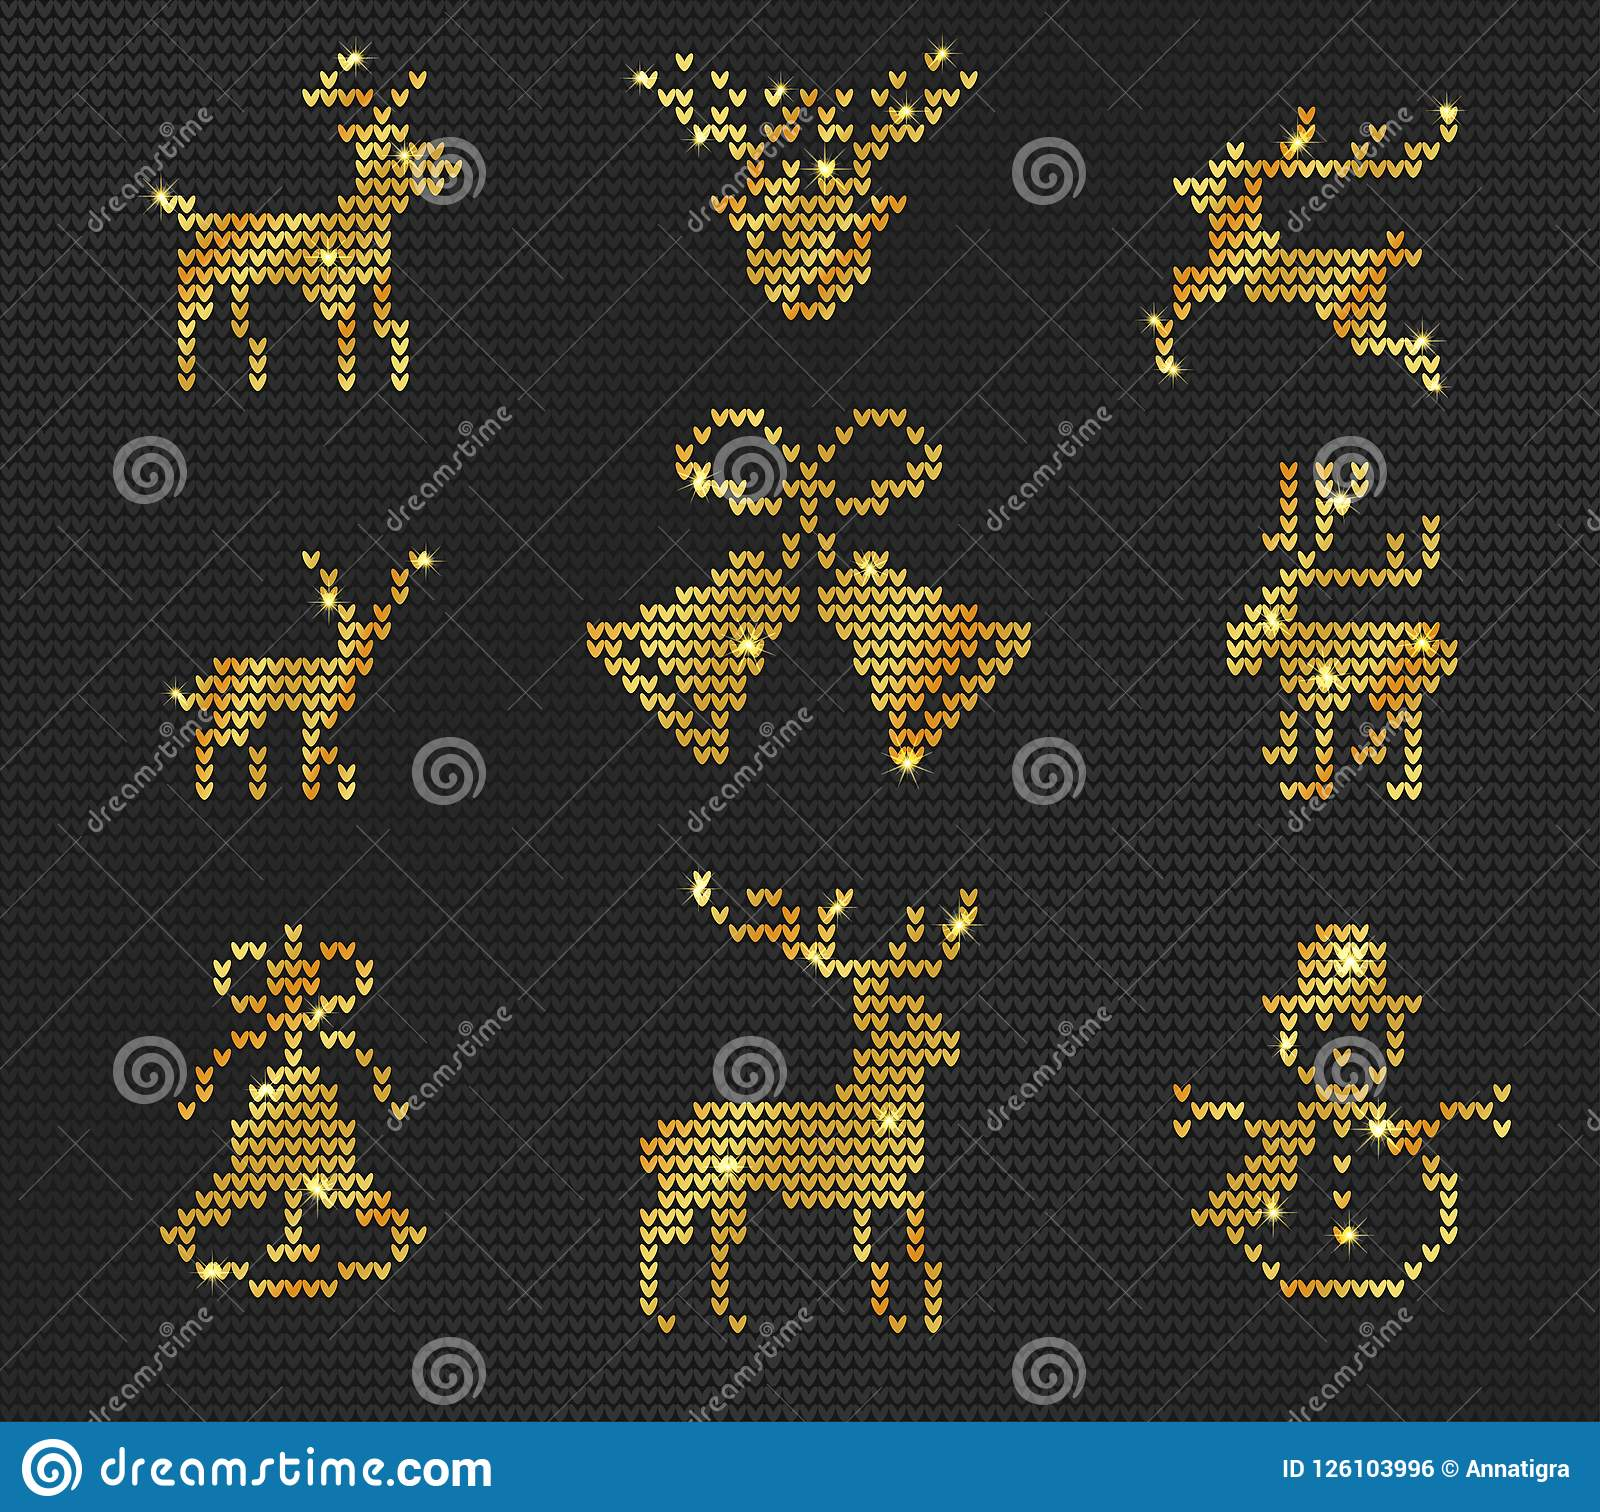 573648ec6bf3 Ugly sweater Pattern stock vector. Illustration of craft - 126103996